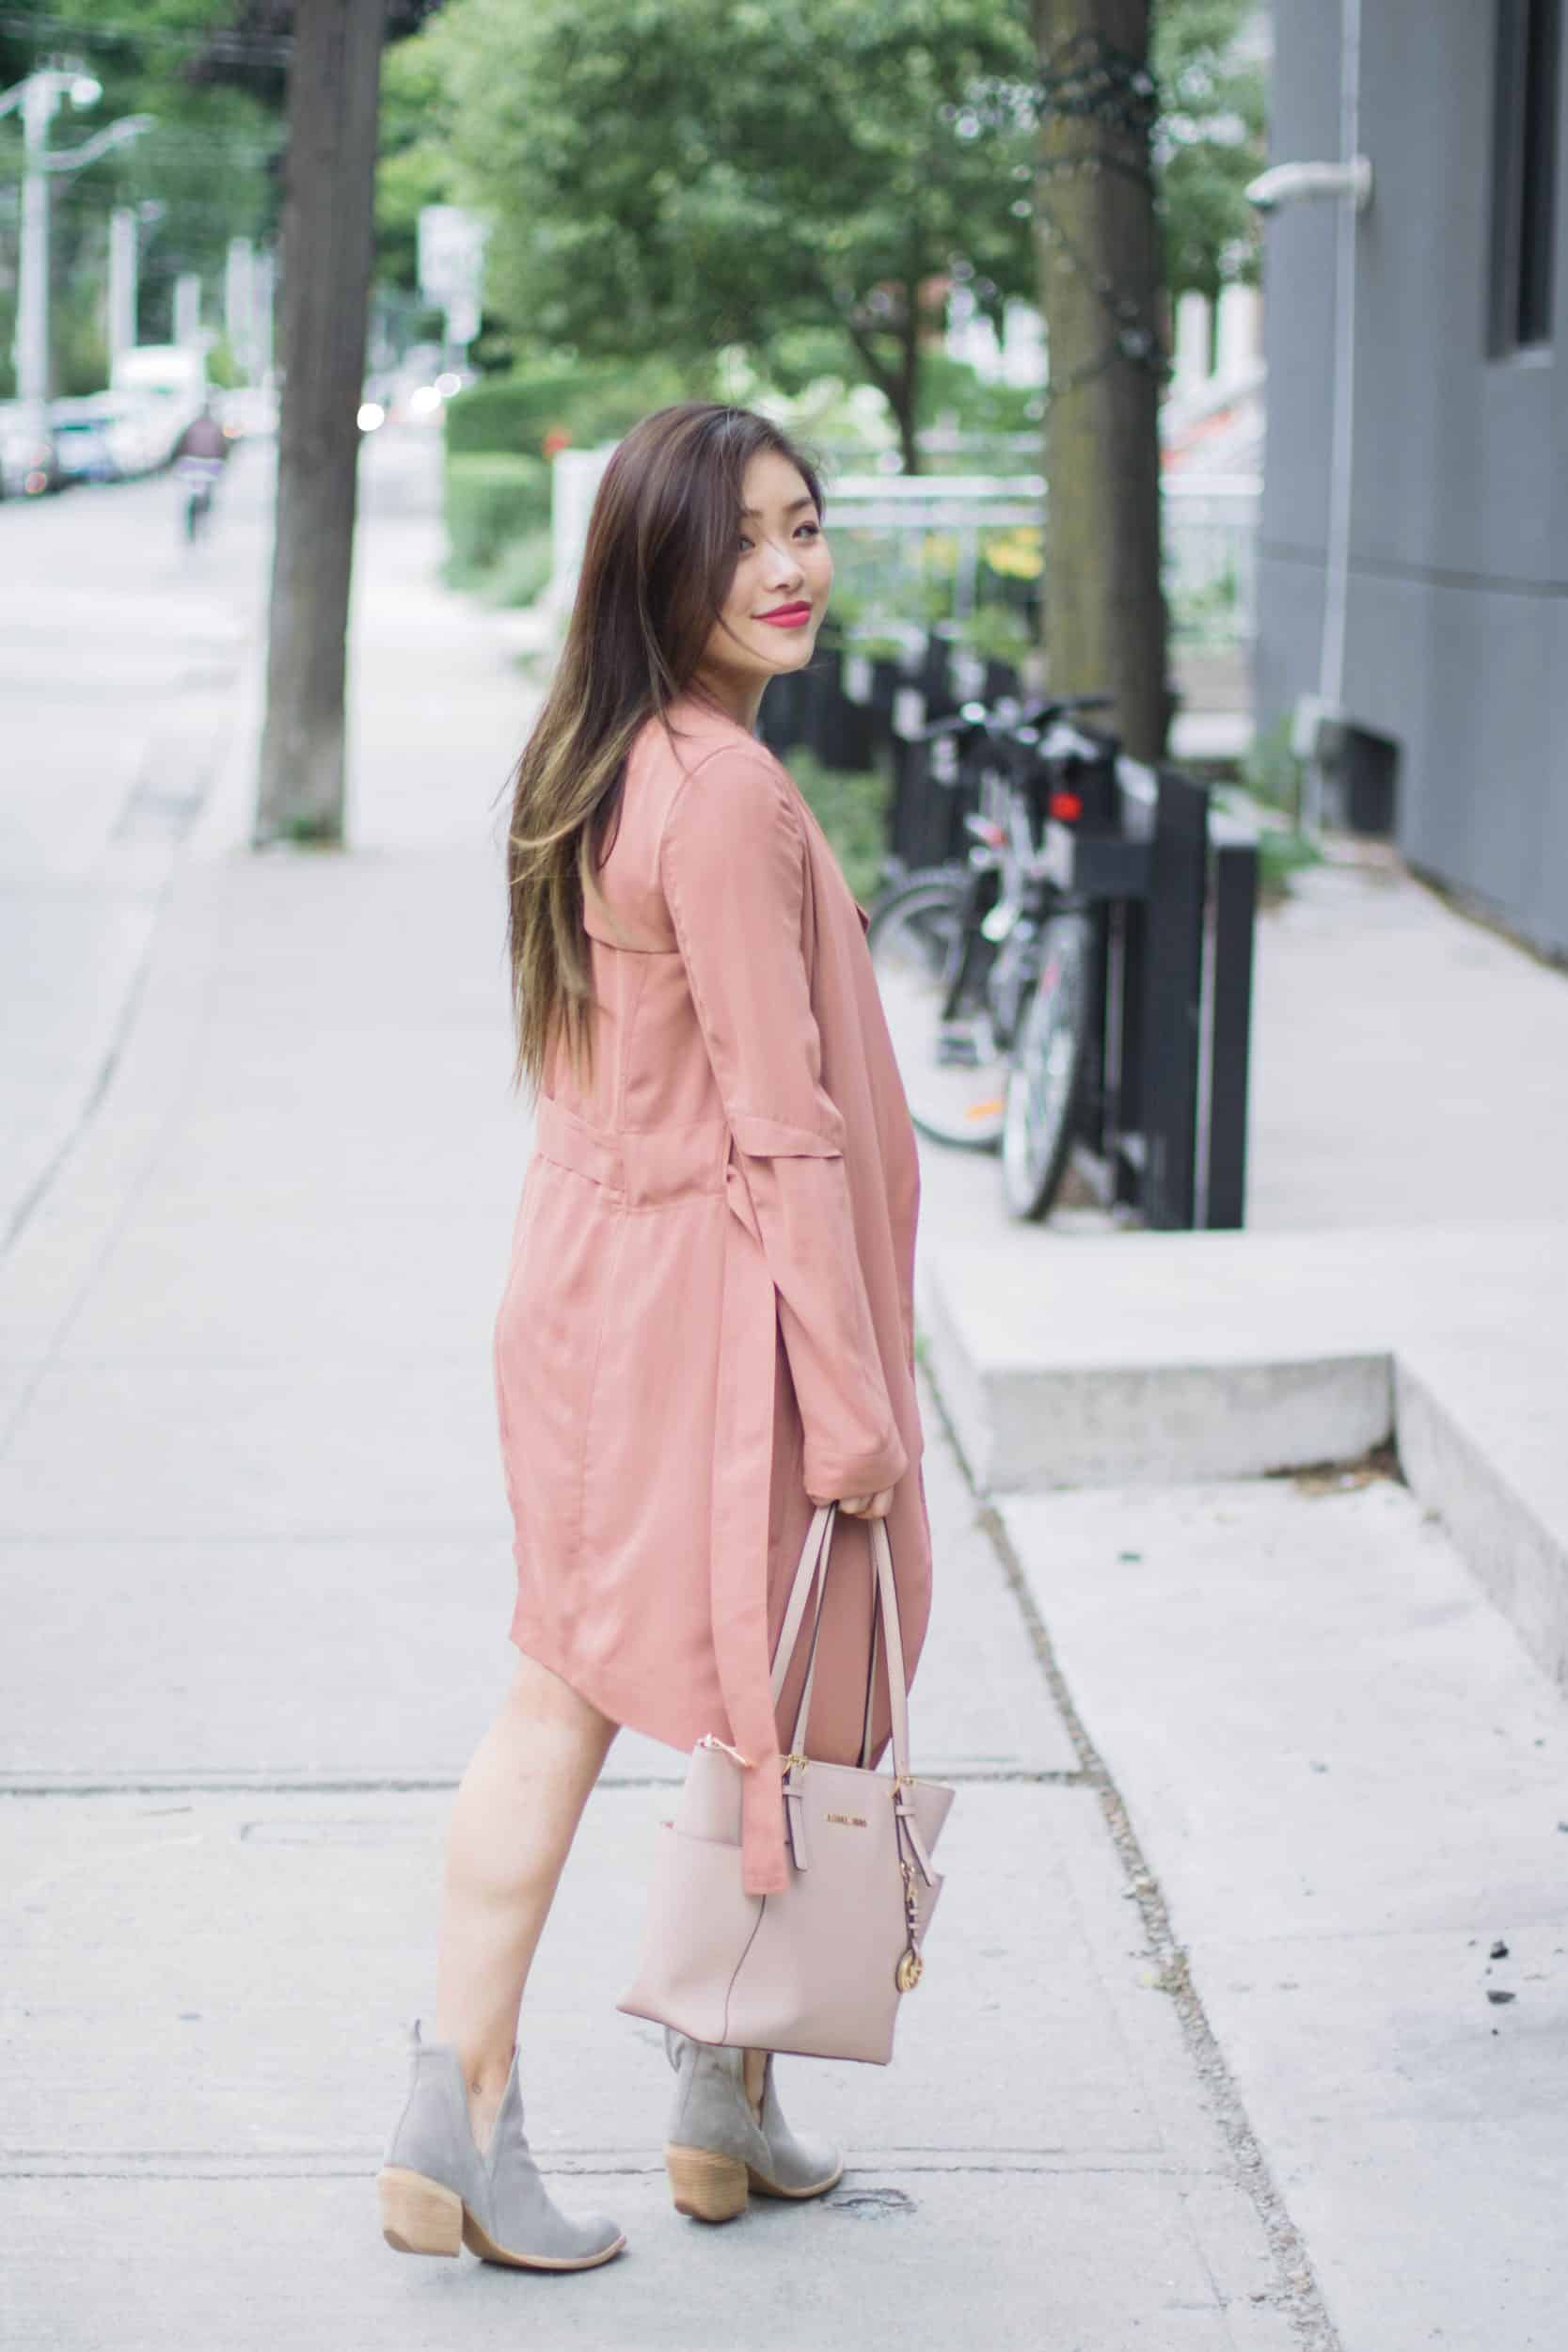 Pretty in Pink: White Slip Dress + Pink Trench Coat